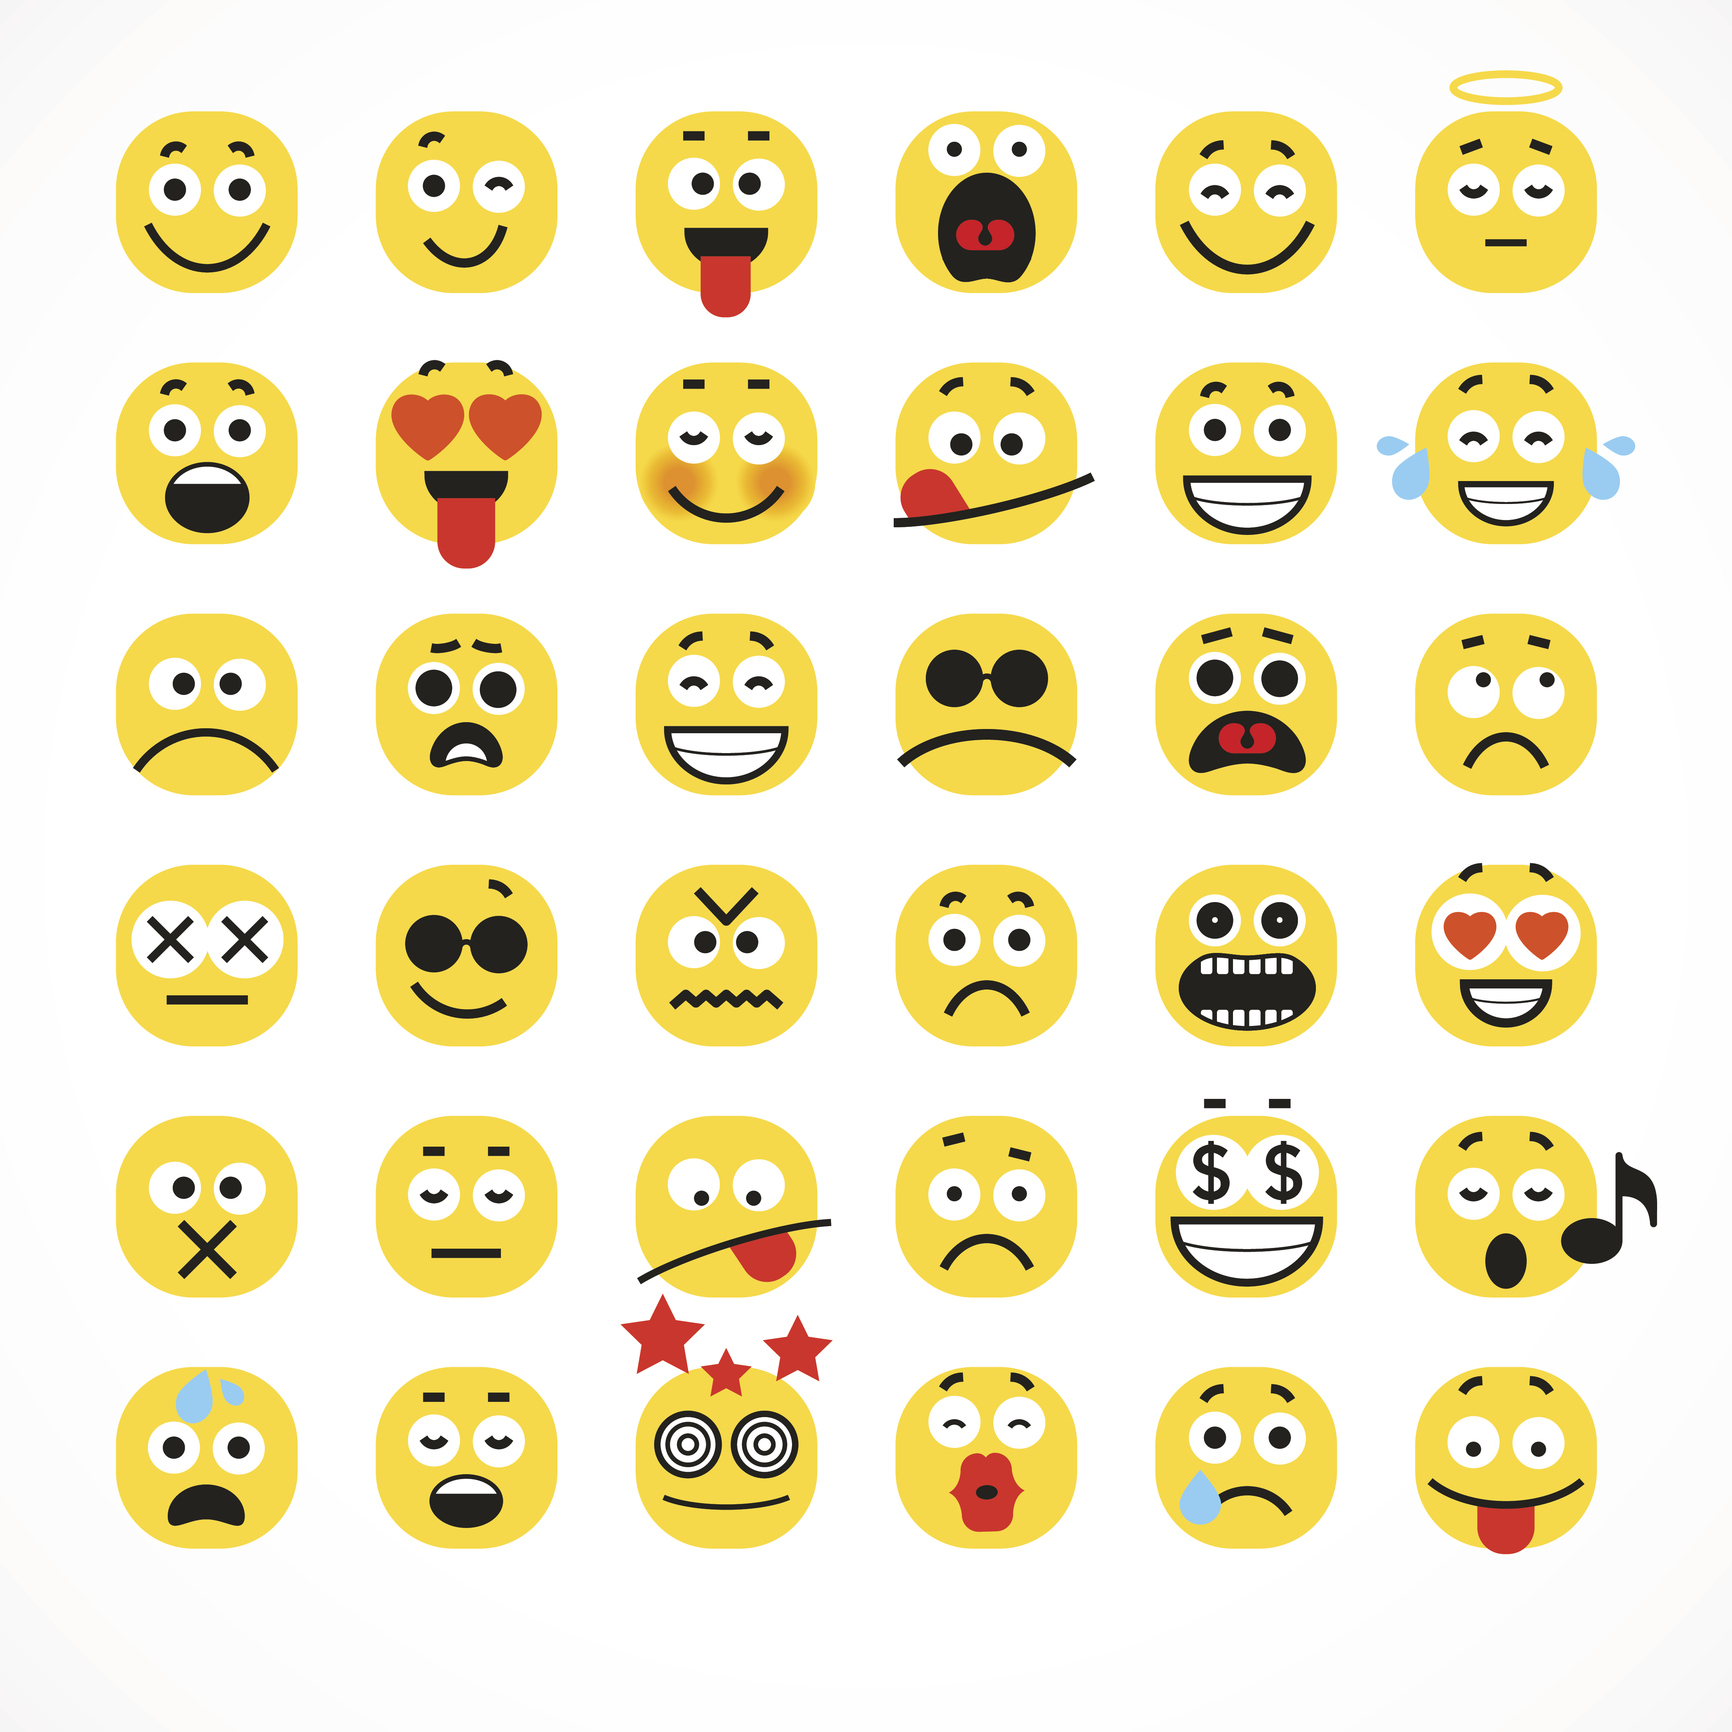 A collection of emoji faces.